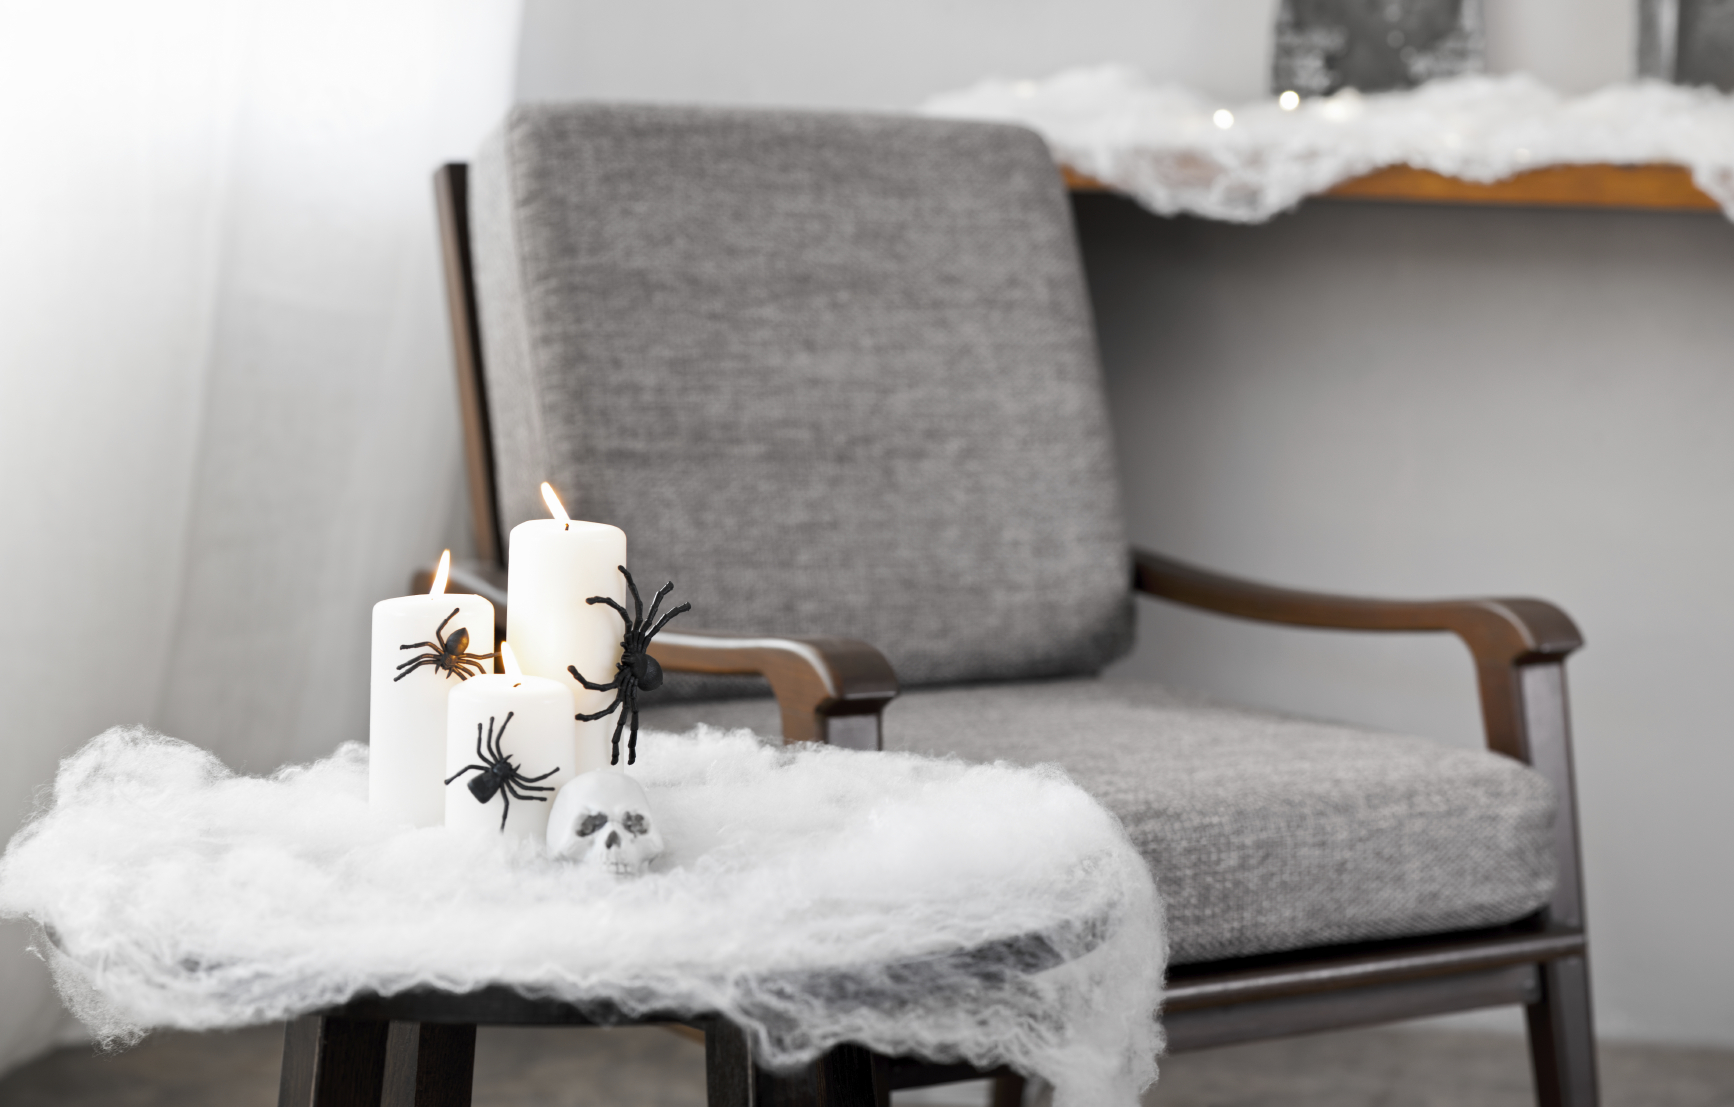 Grey upholstered chair in Halloween setting